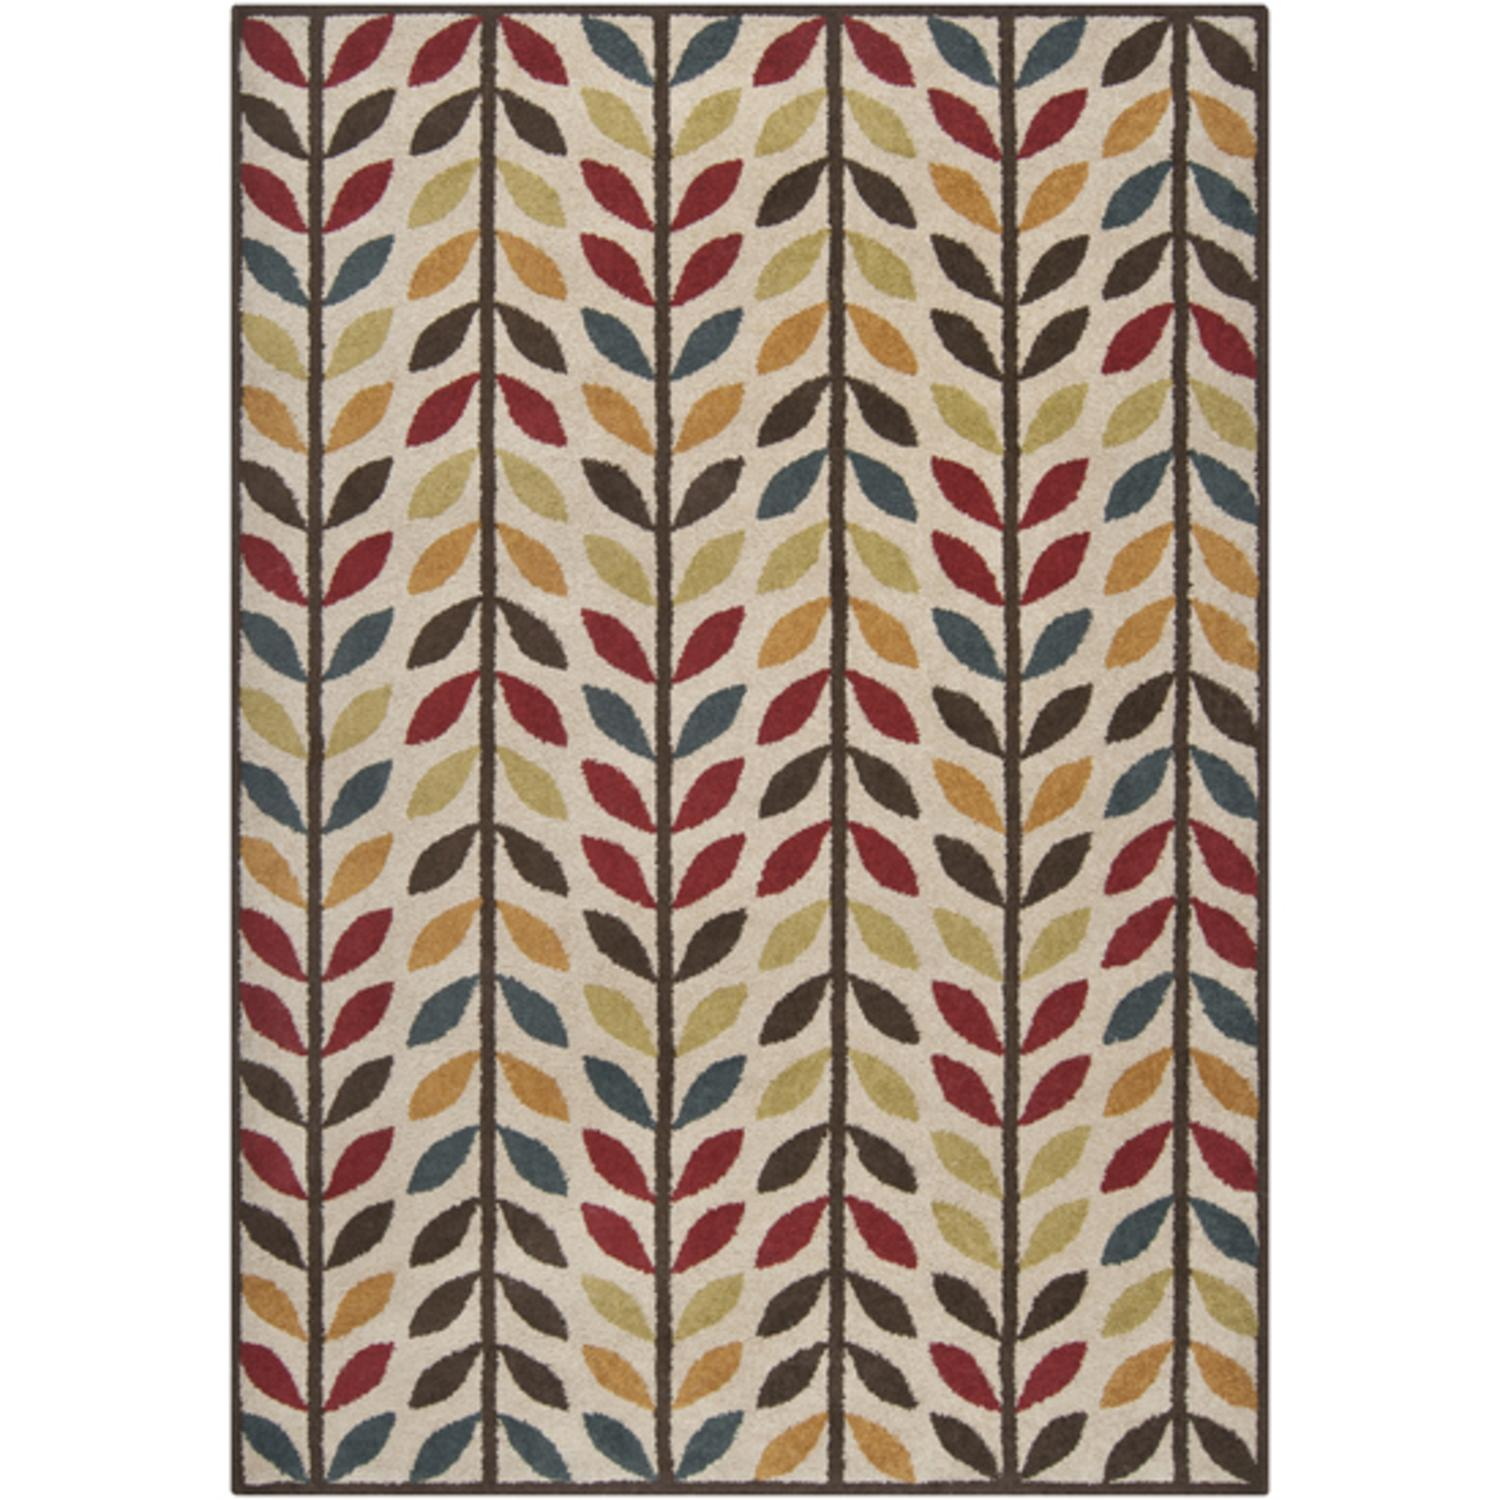 6.5' x 9.5' Graphic Leafy Vine Dark Slate Blue, Coffee Bean and Curry Area Rug